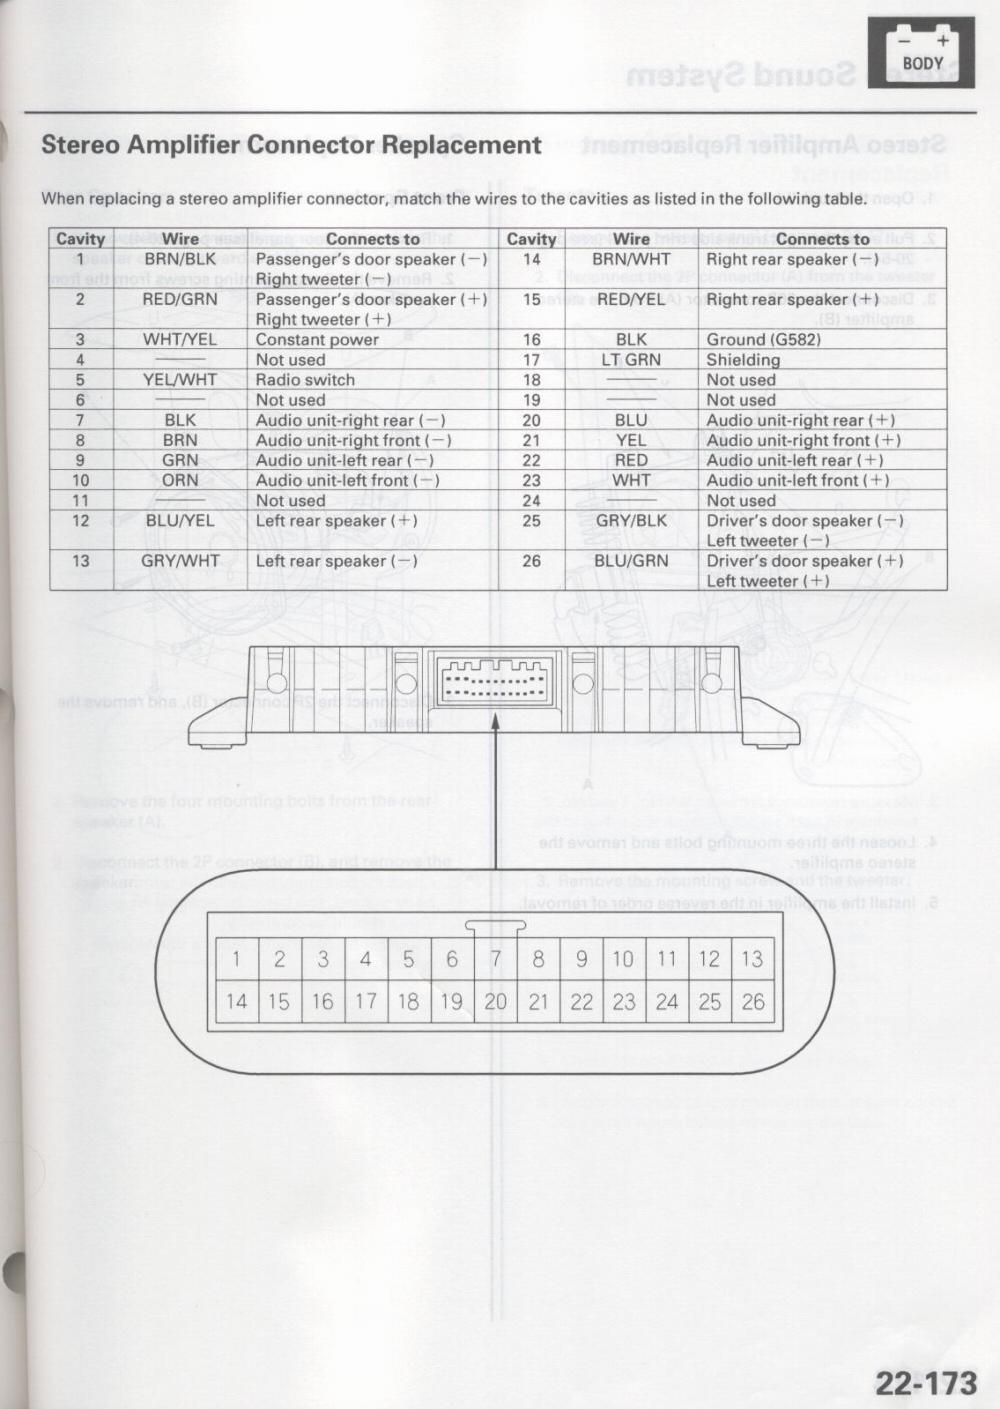 acura wiring diagram acura wiring diagram acura auto wiring car radio stereo audio wiring diagram autoradio connector wire acura 2002 tl car stereo amplifier wiring